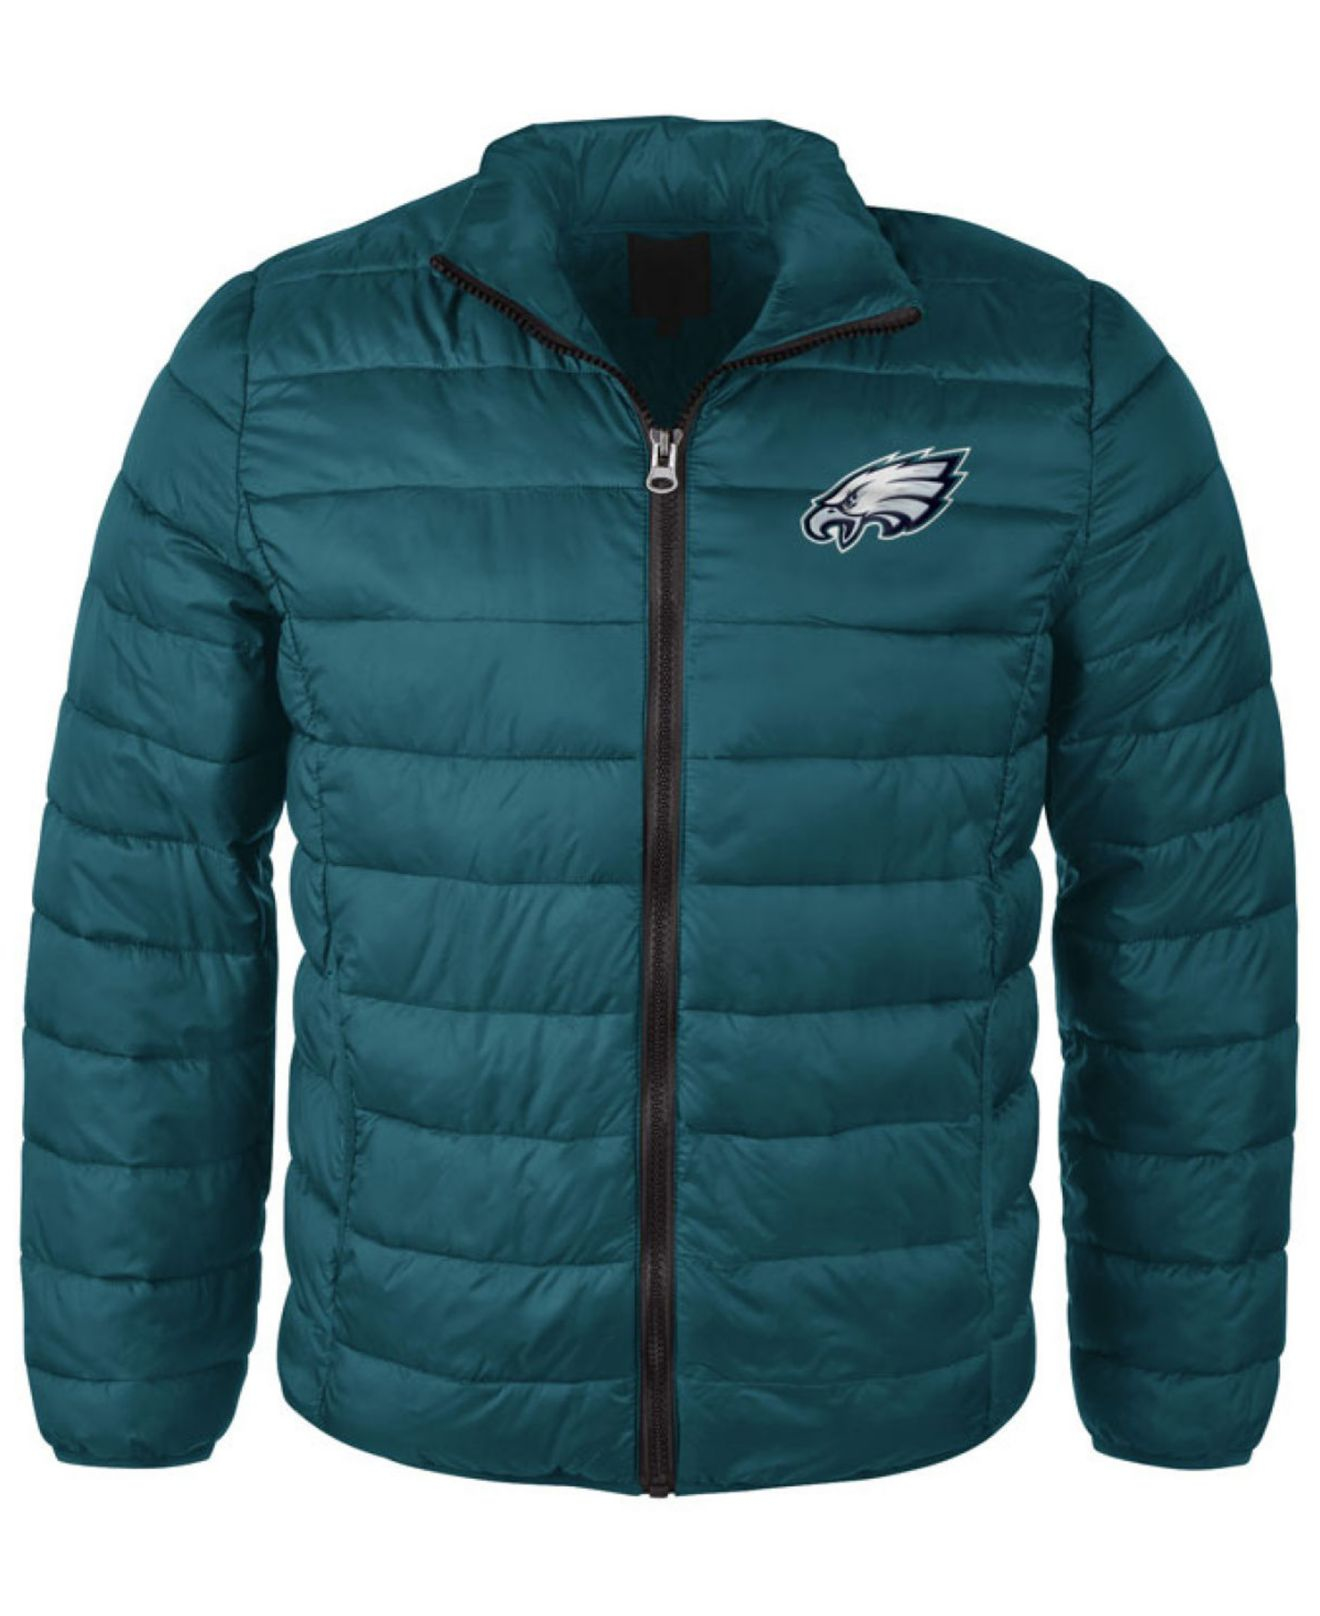 Lyst - G3 Sports Men s Philadelphia Eagles Packable Quilted Jacket ... cd45b796a